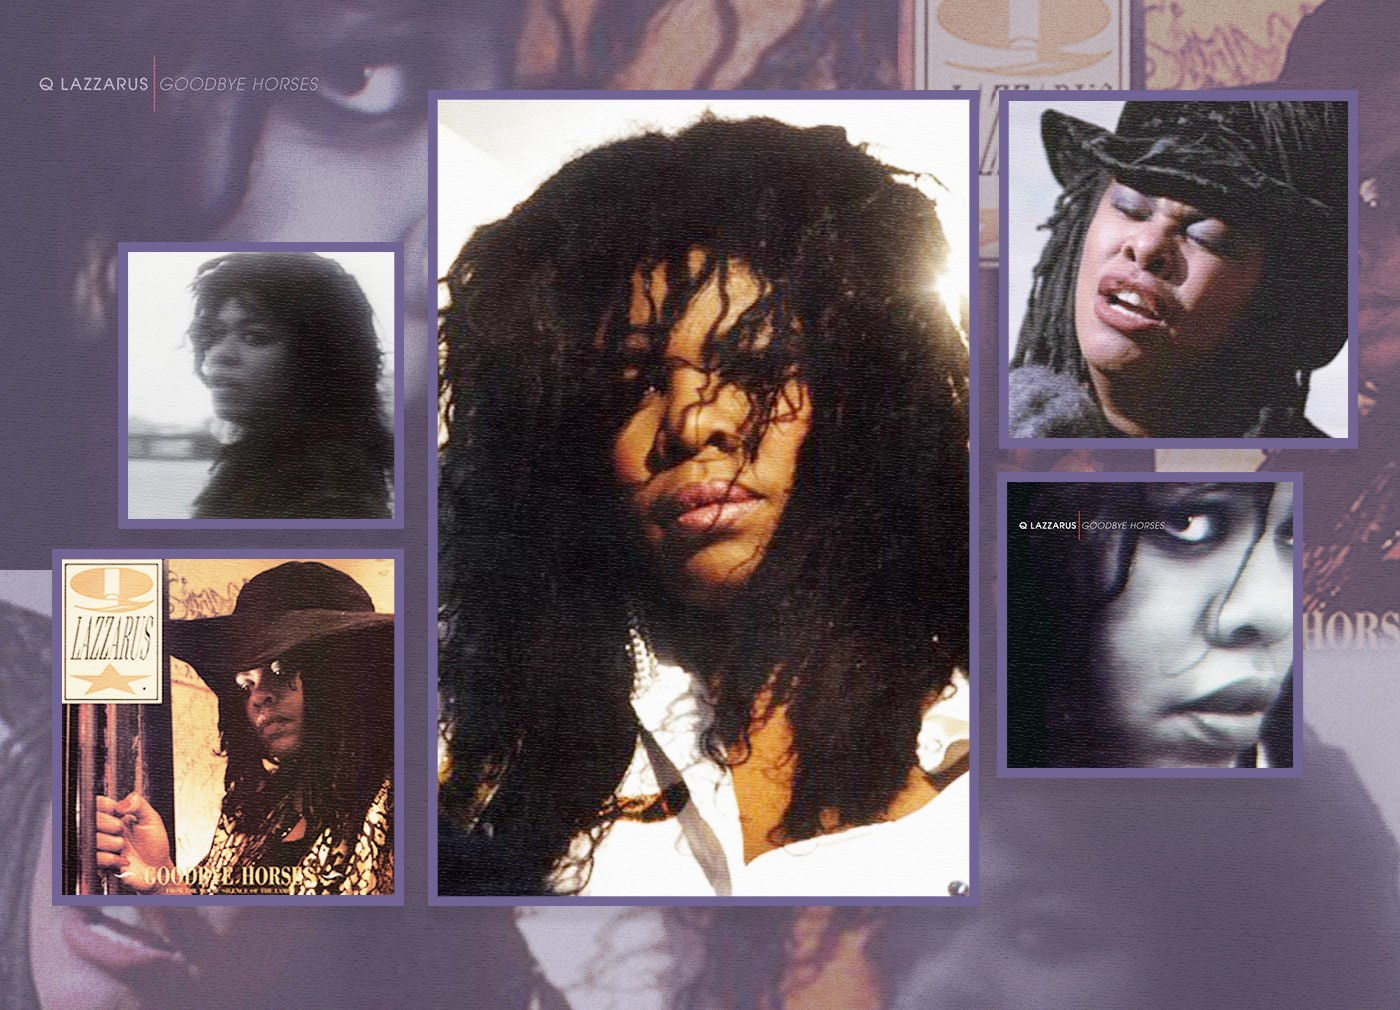 Q Lazzarus artwork